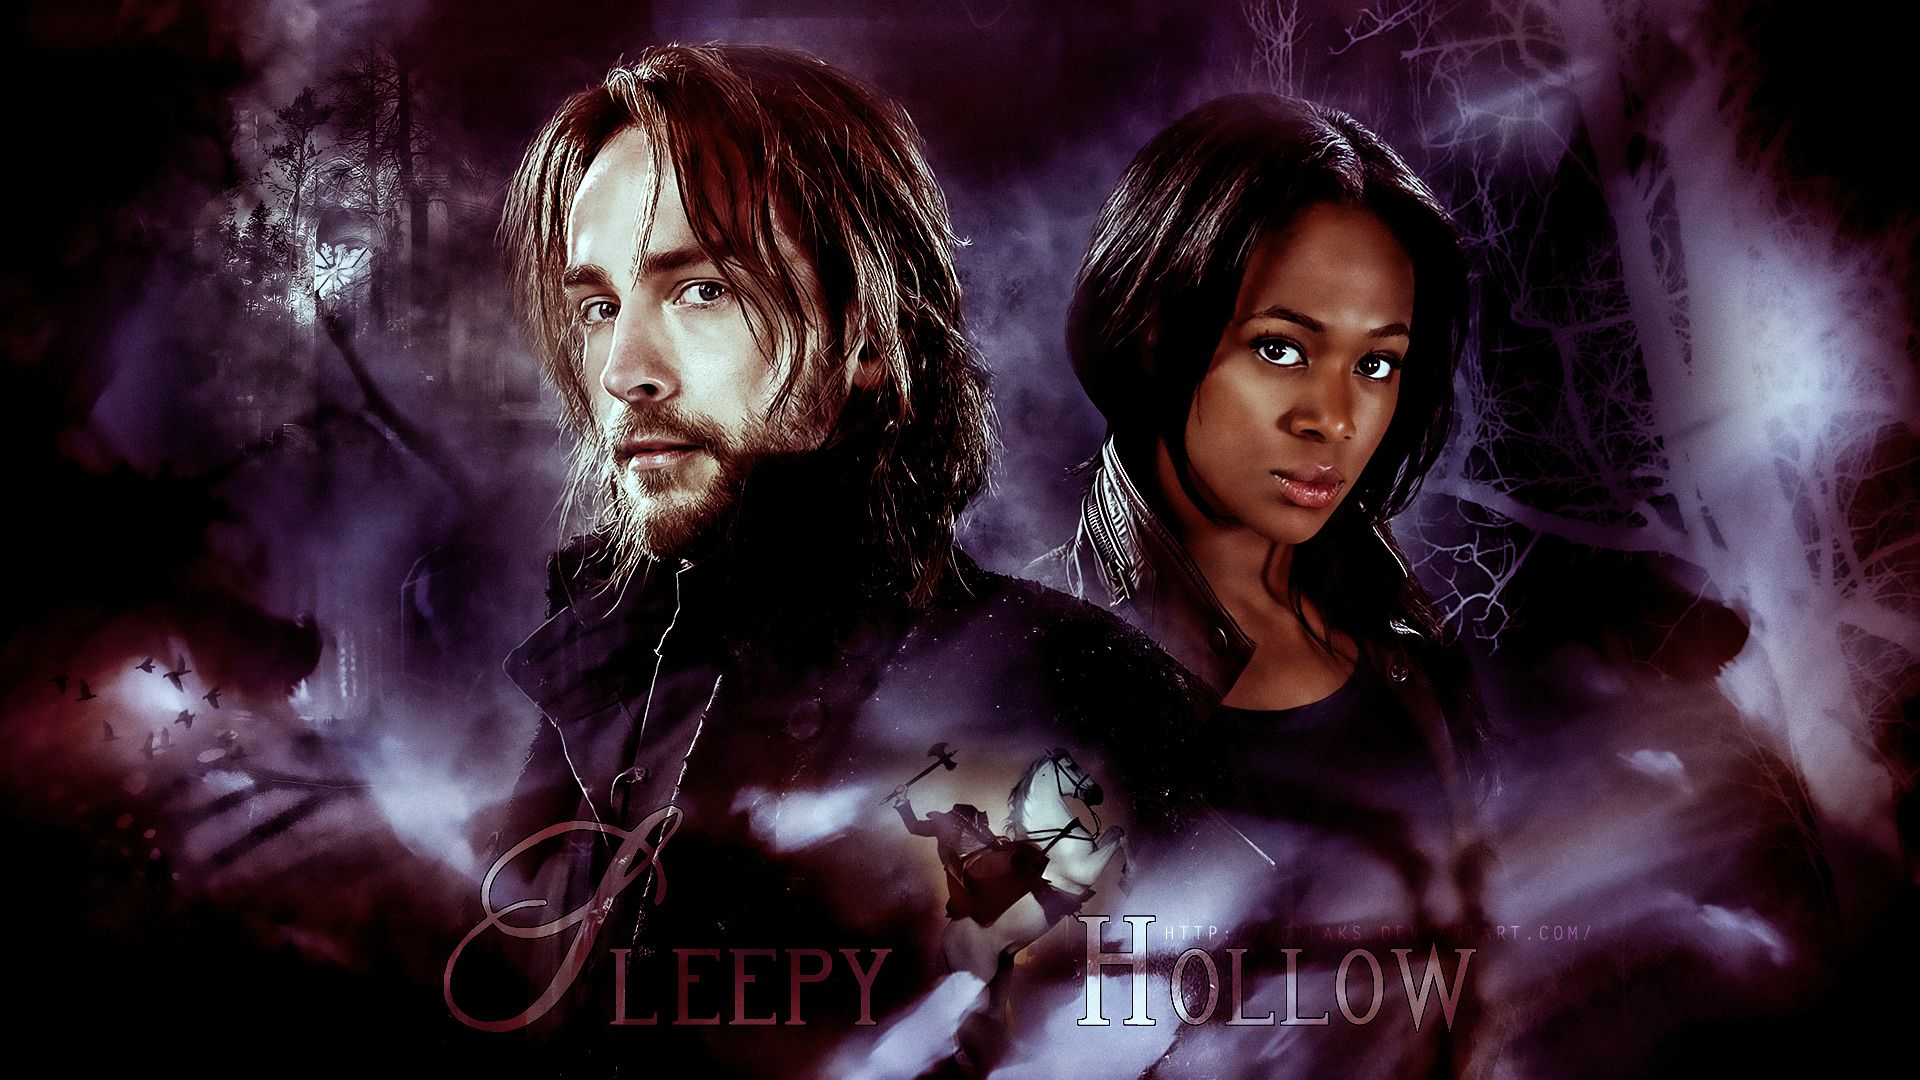 Sleepy Hollow TV Ichabod Crane | Sleepy-Hollow-sleepy-hollow-tv-series-35766974-1920-1080.jpg